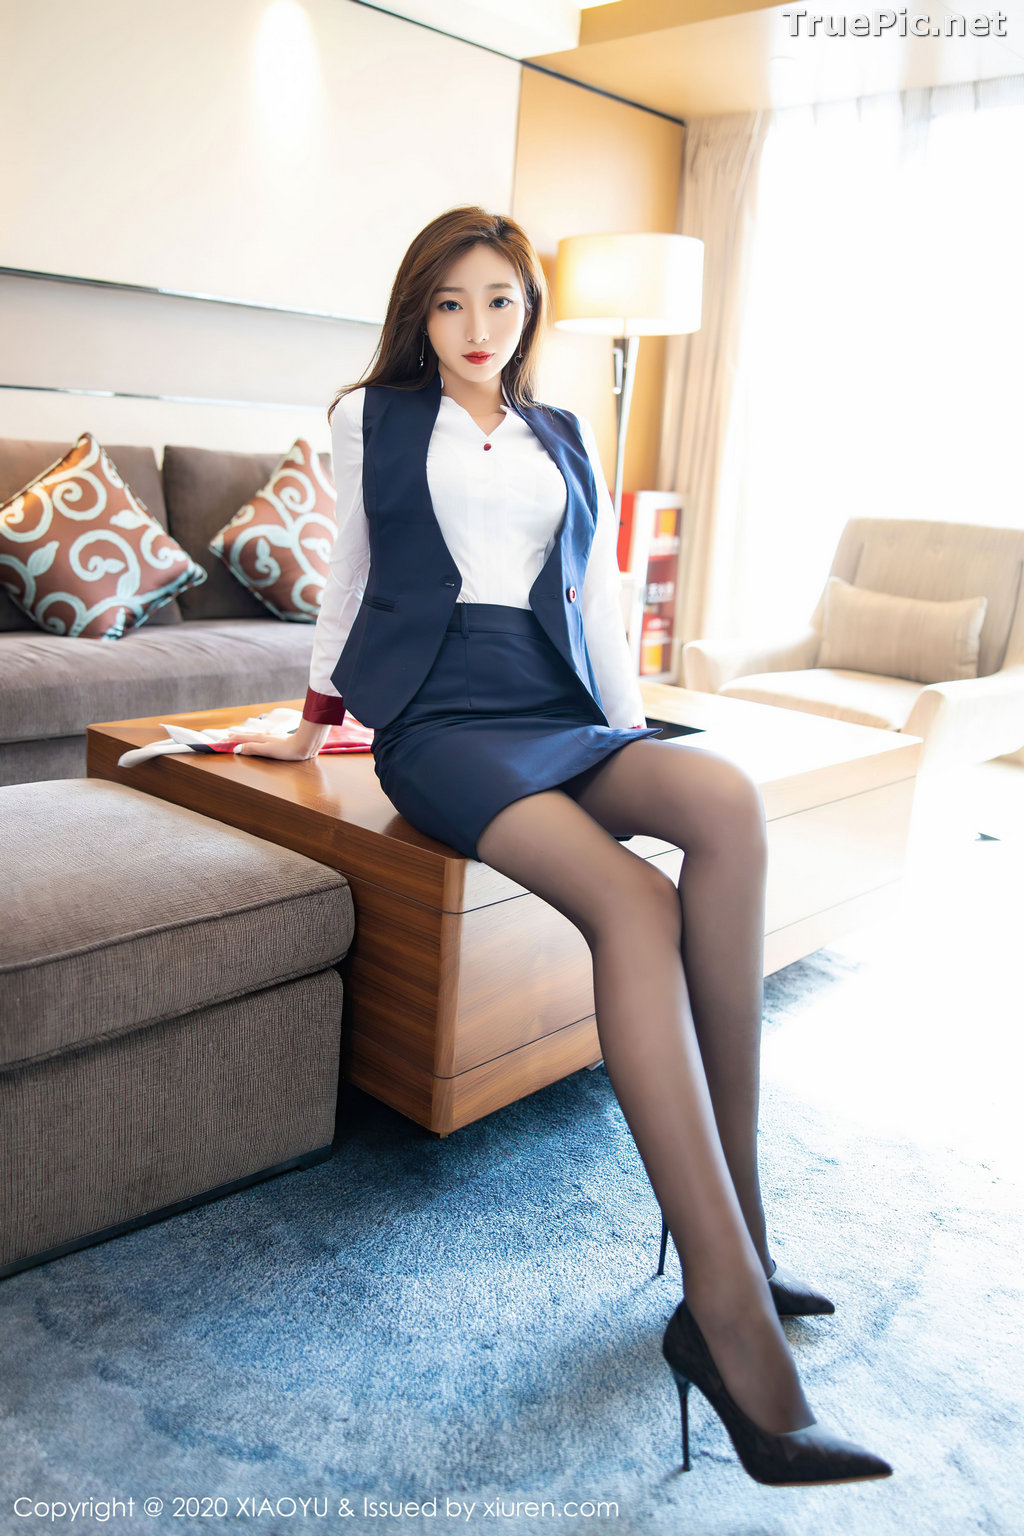 Image XiaoYu Vol.370 - Chinese Model - 安琪Yee - Affter Working Day - TruePic.net - Picture-7